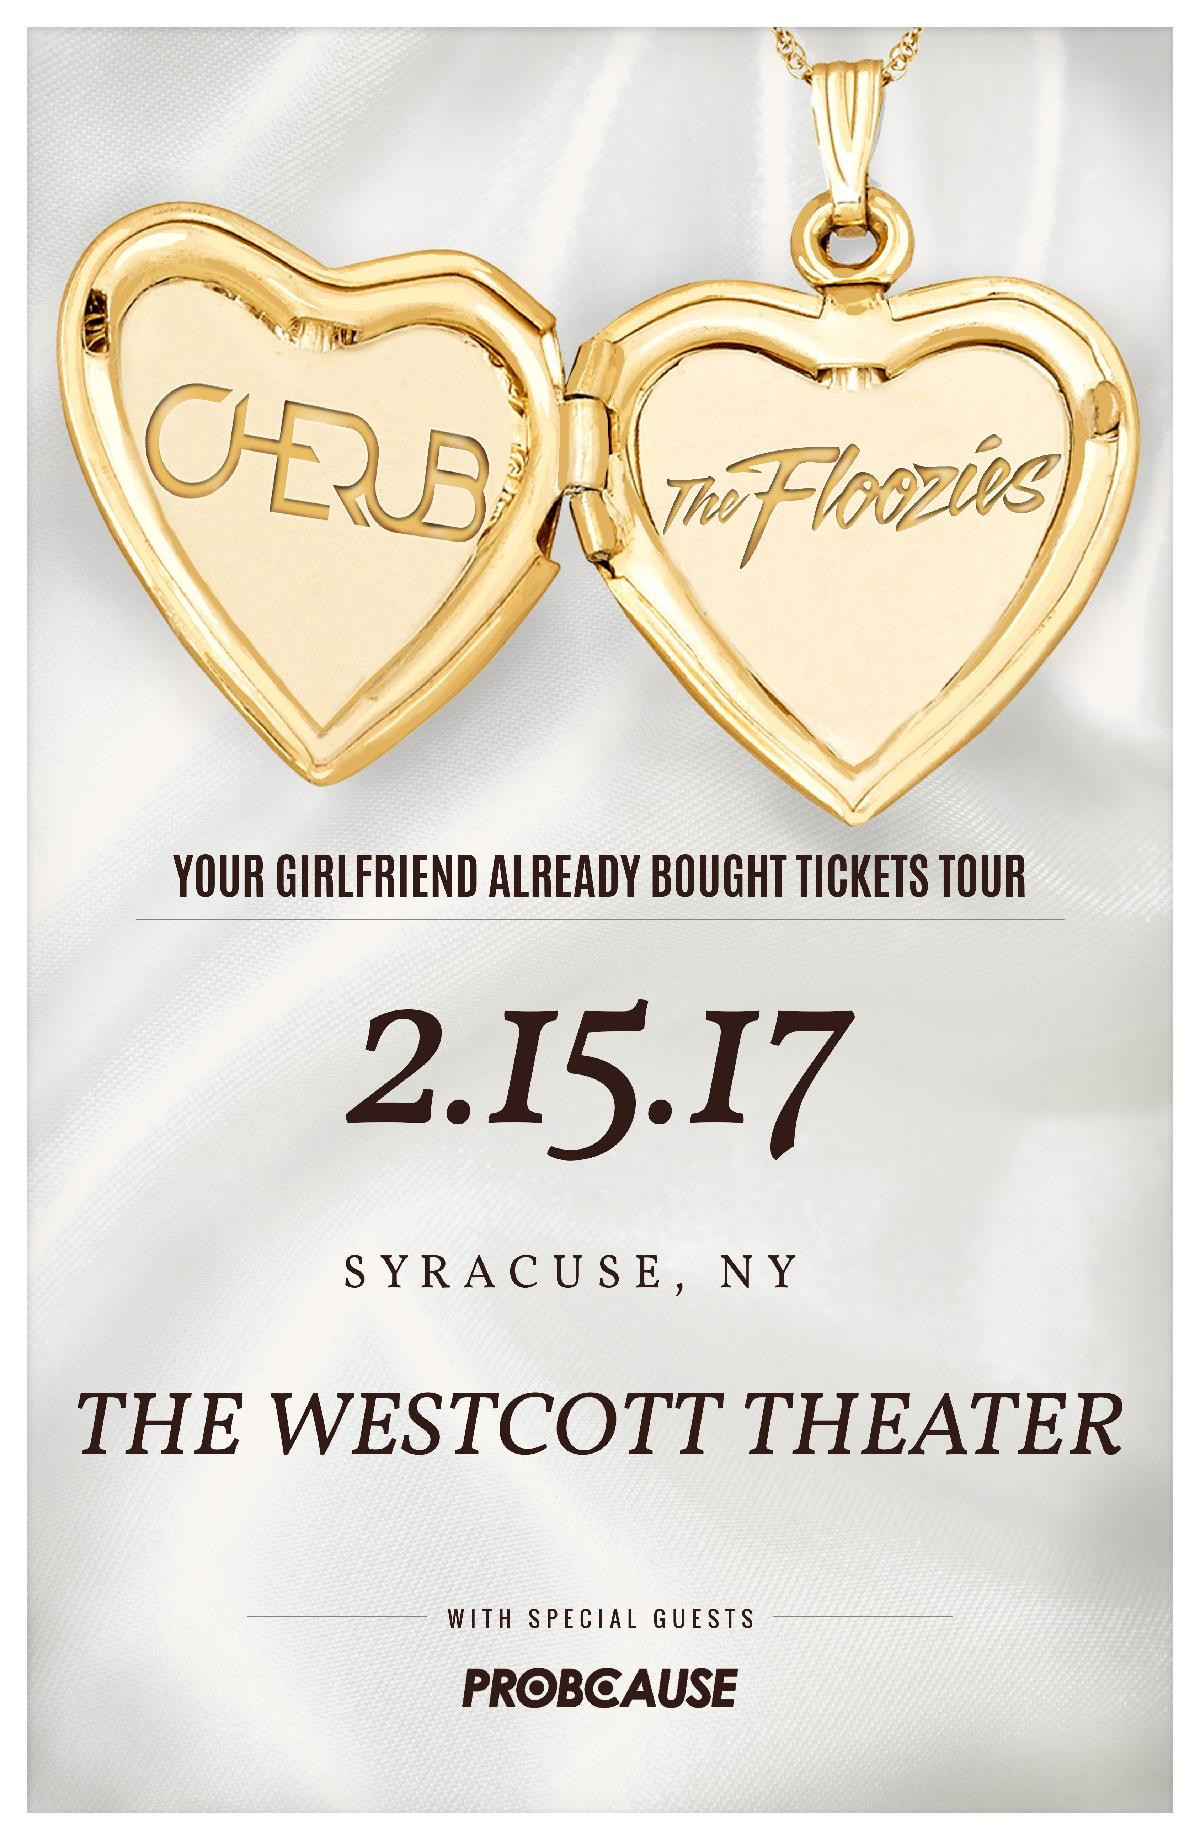 The westcott theater cherub the floozies your girlfriend cherub the floozies your girlfriend already bought tickets tour aiddatafo Gallery